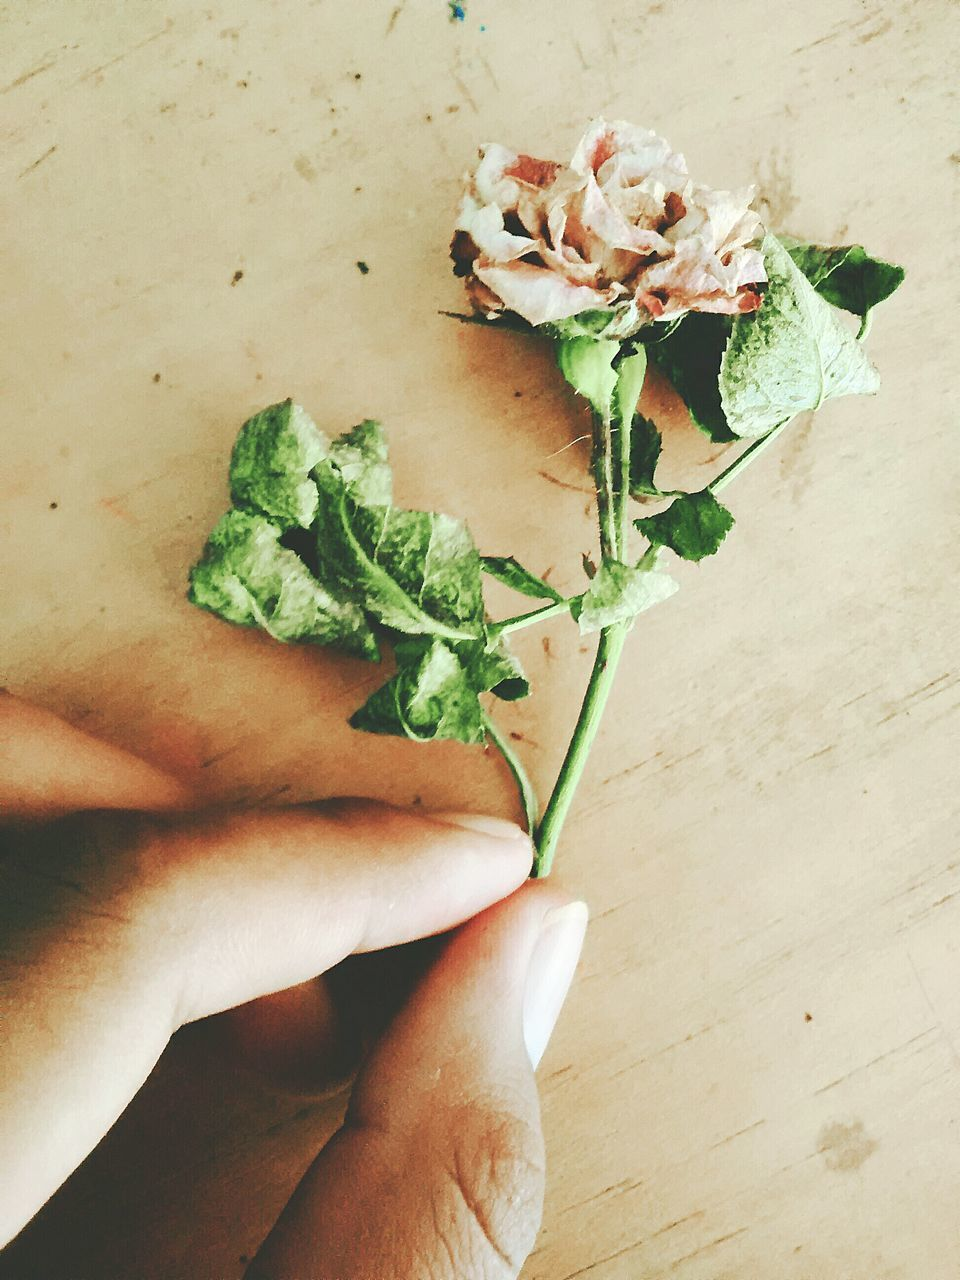 human hand, human body part, flower, indoors, table, holding, rose - flower, one person, freshness, high angle view, close-up, real people, bouquet, fragility, food, flower head, nature, day, people